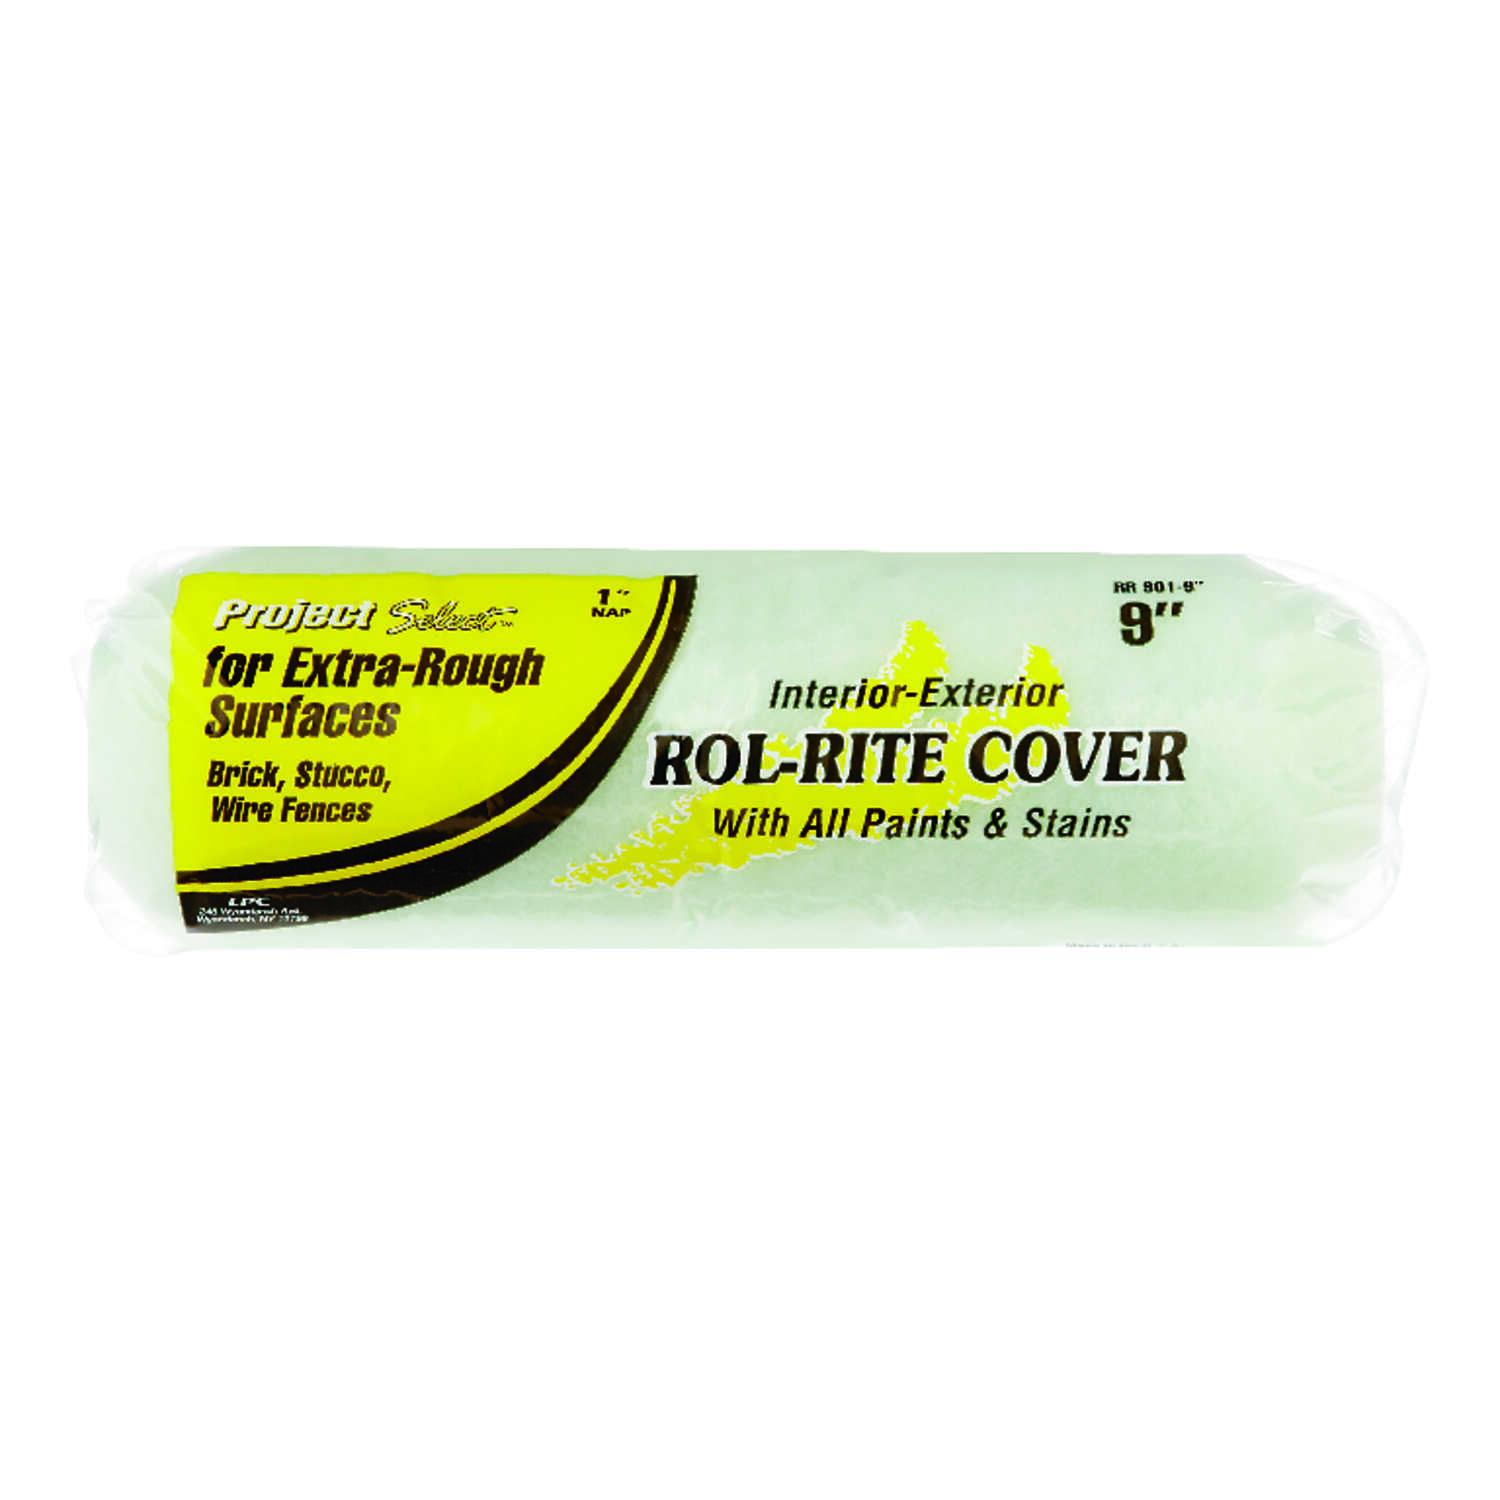 Linzer  Rol-Rite  Polyester  1 in.  x 9 in. W Regular  Paint Roller Cover  For Rough Surfaces 1 pk